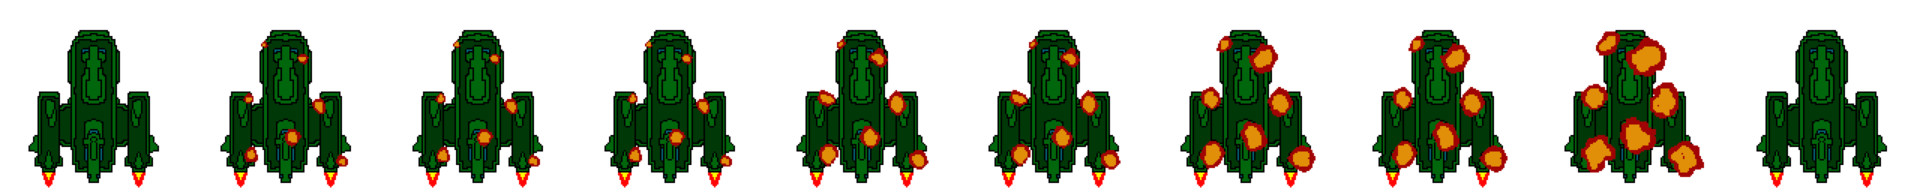 Early draft for a sprite sheet just for the player explosion animations.